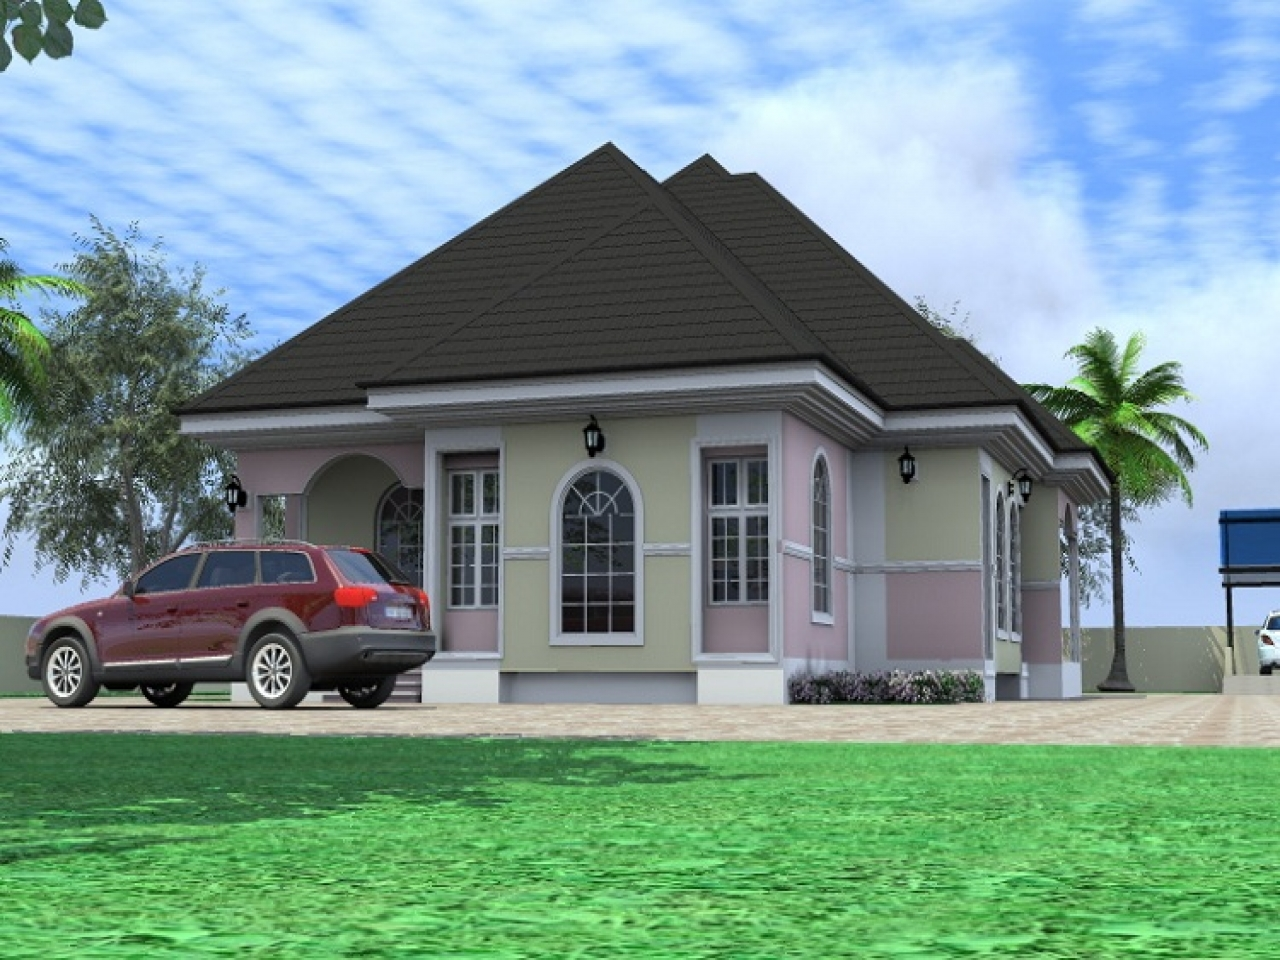 Philippines 4 bedroom bungalow architectural designs 4 for Bungalow bedroom ideas